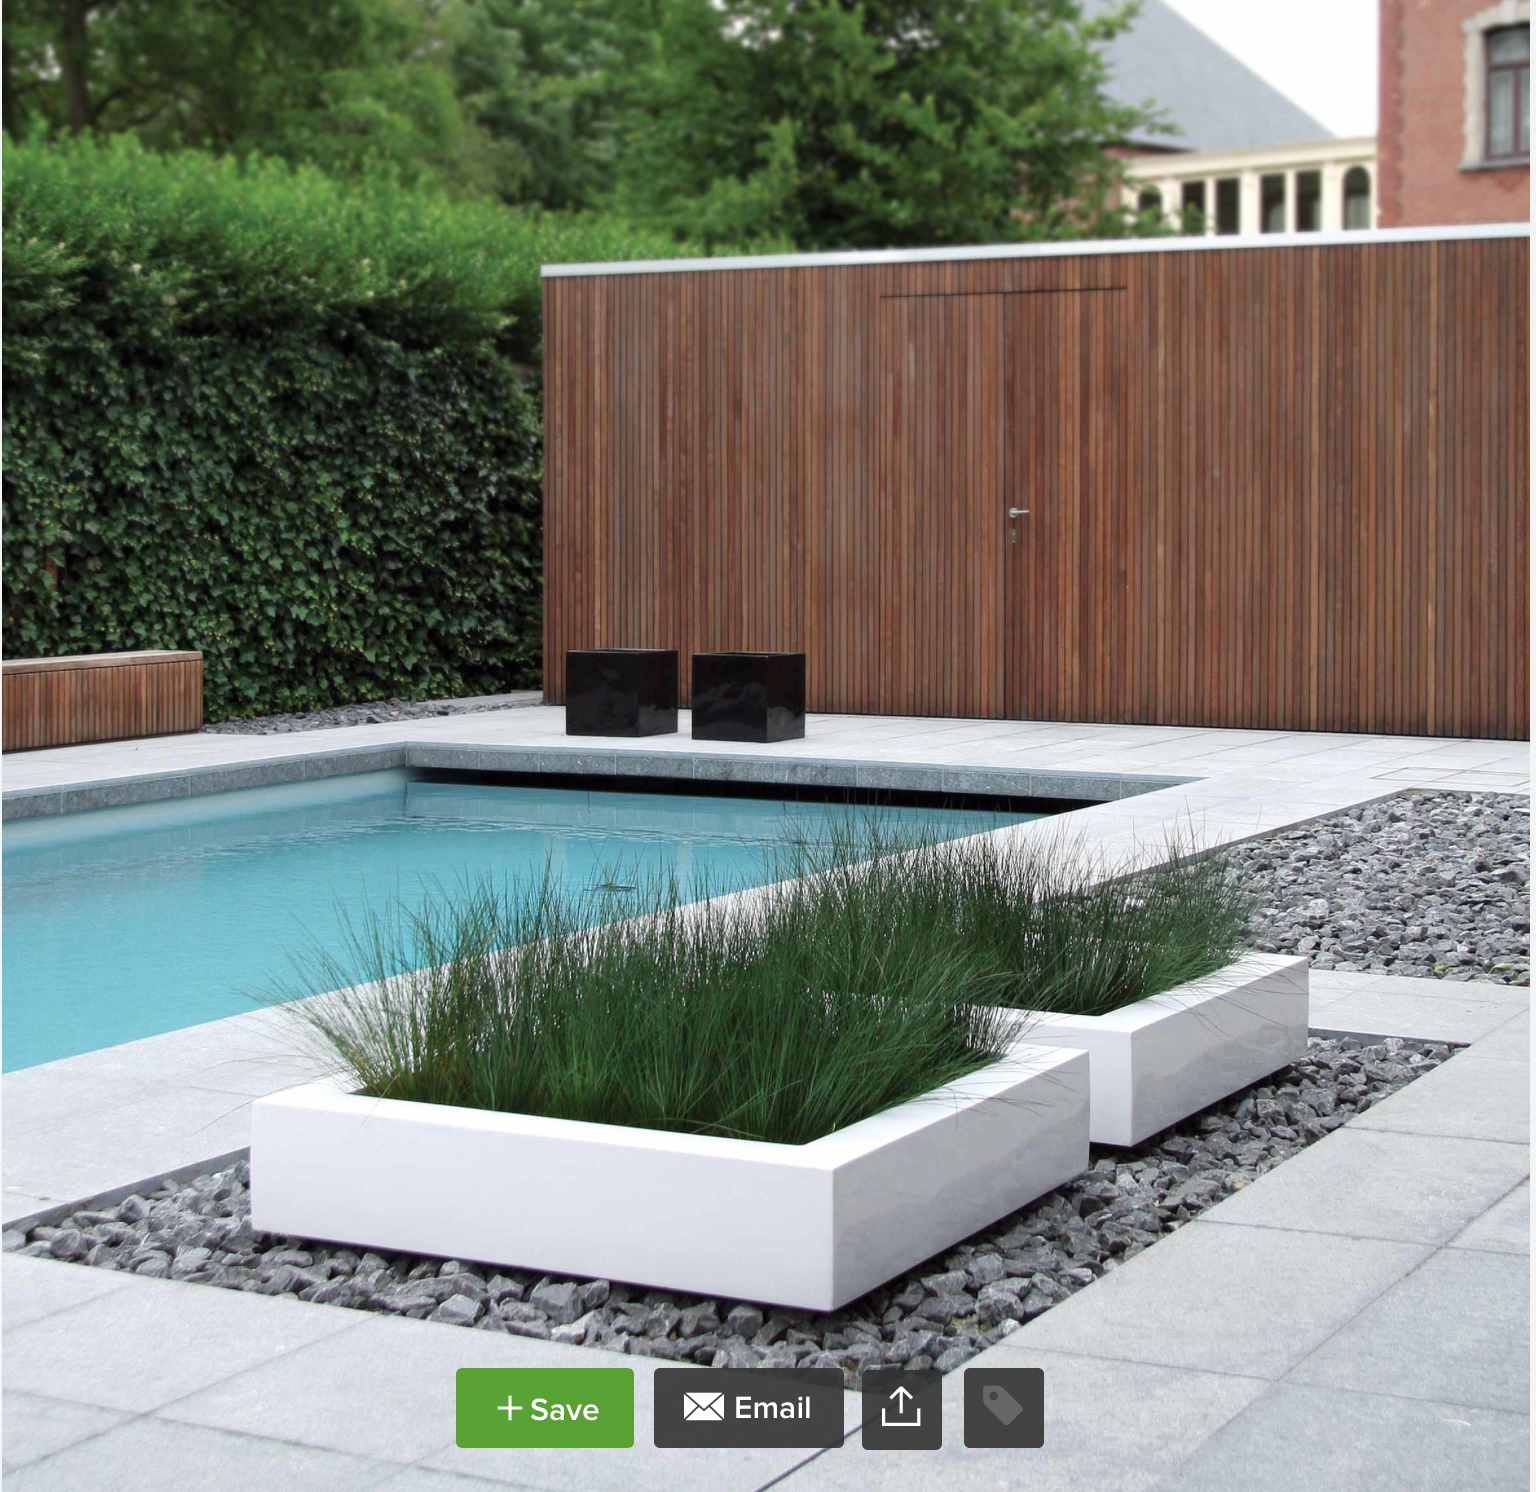 Pool And Decking Materials River Rocks, White Walls, Wood Walls